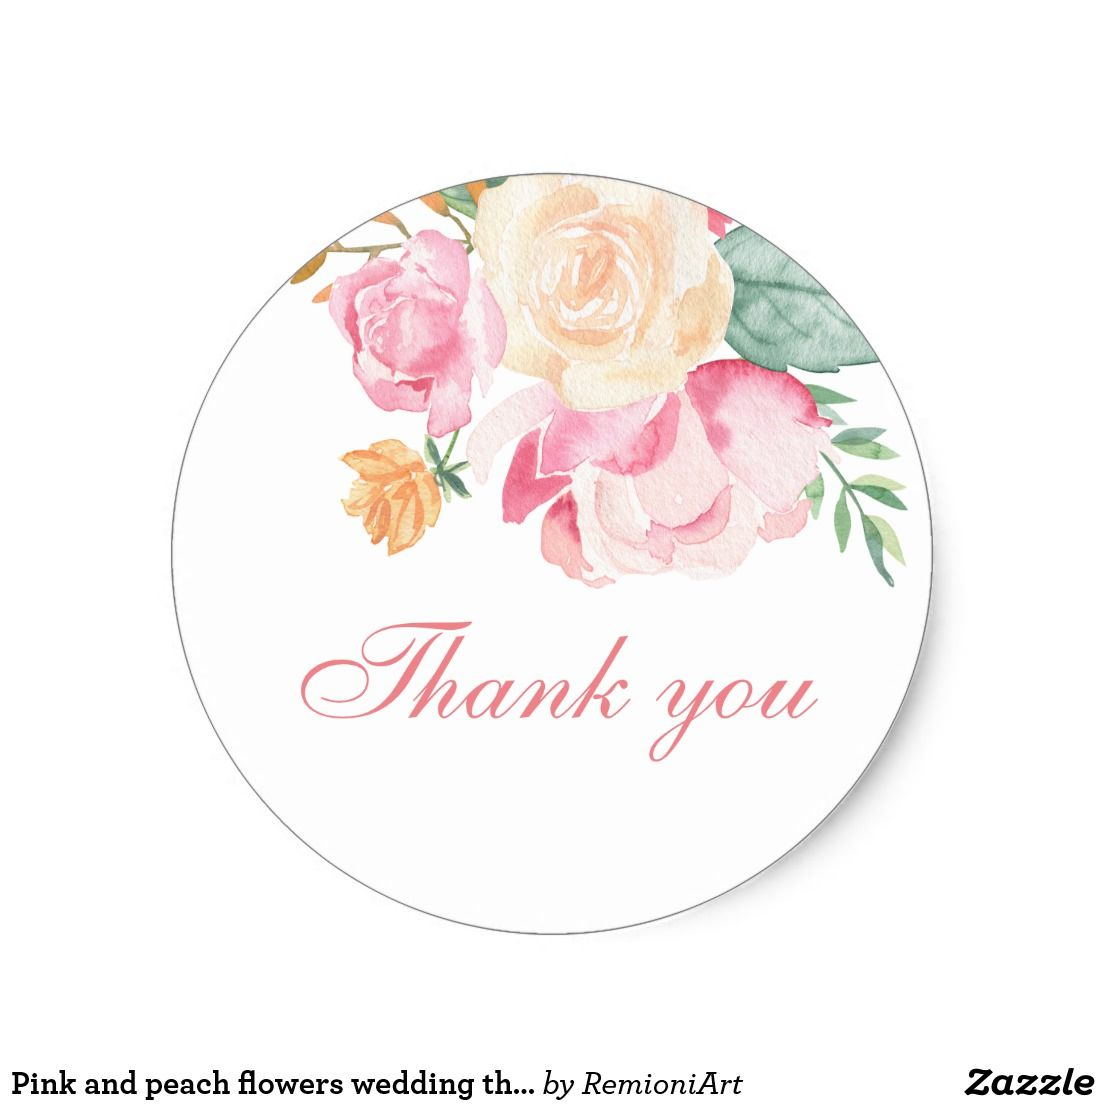 Pink and peach flowers wedding thank you classic round sticker thèmes mariage fleurs de mariage